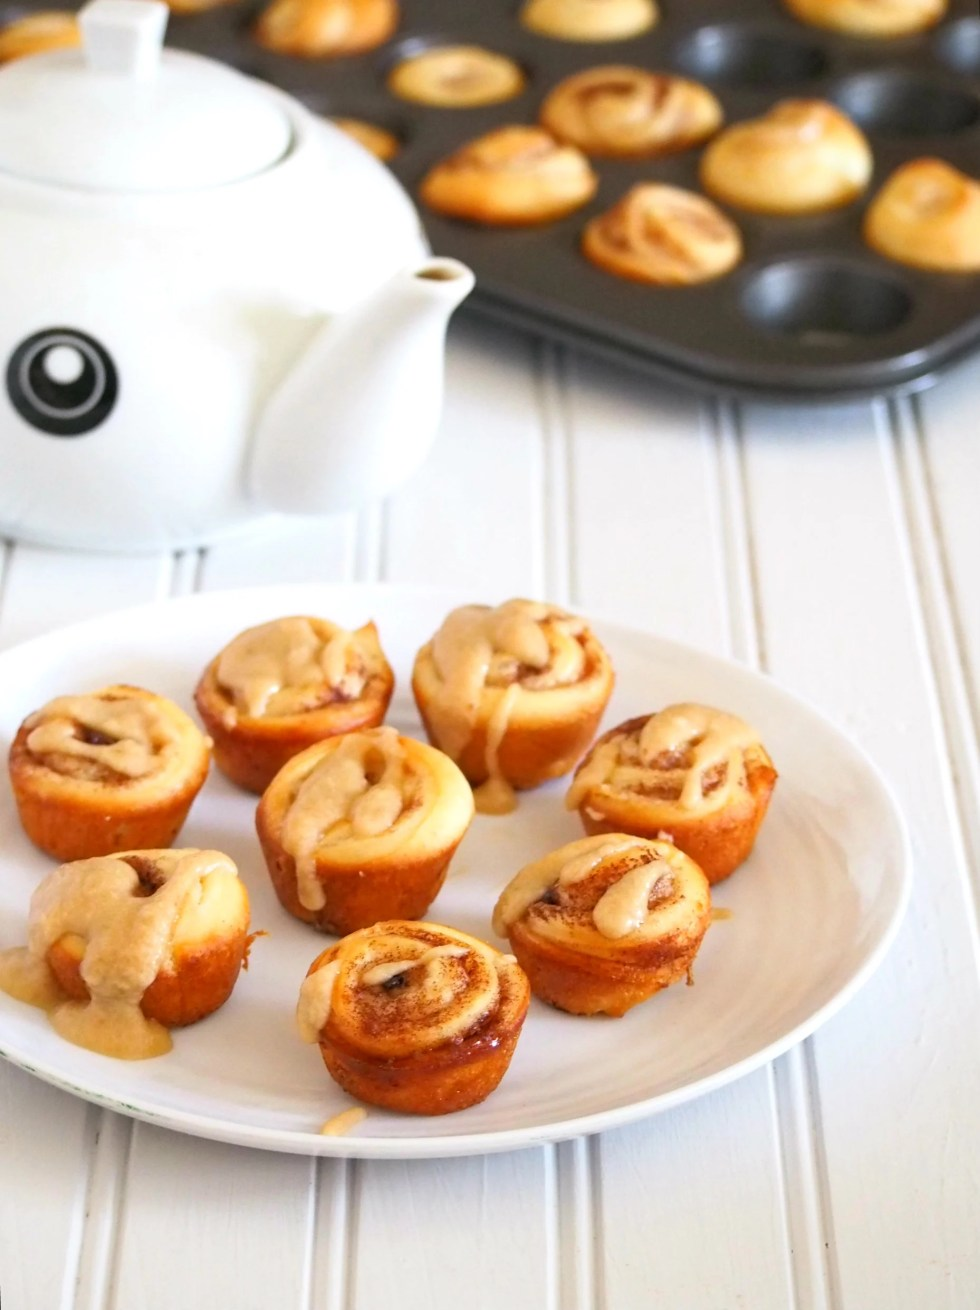 You will love these mini cinnamon rolls glazed with creamy coffee icing. these are so cute and small that you can pop them right into your mouth.